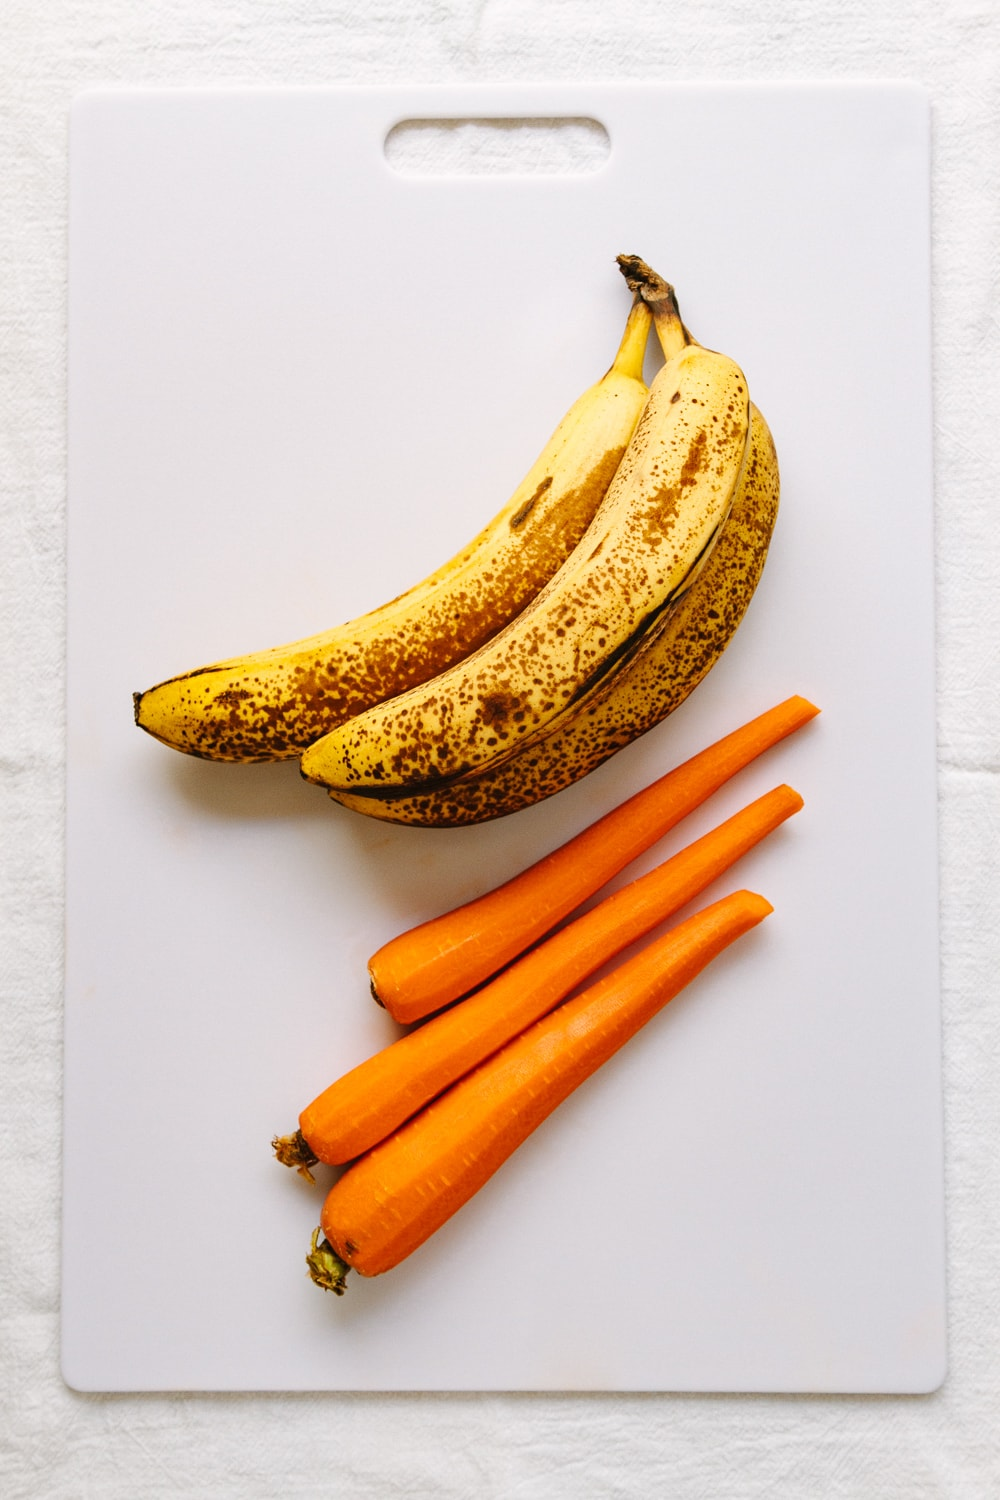 top down view of carrots and bananas on a white cutting board.